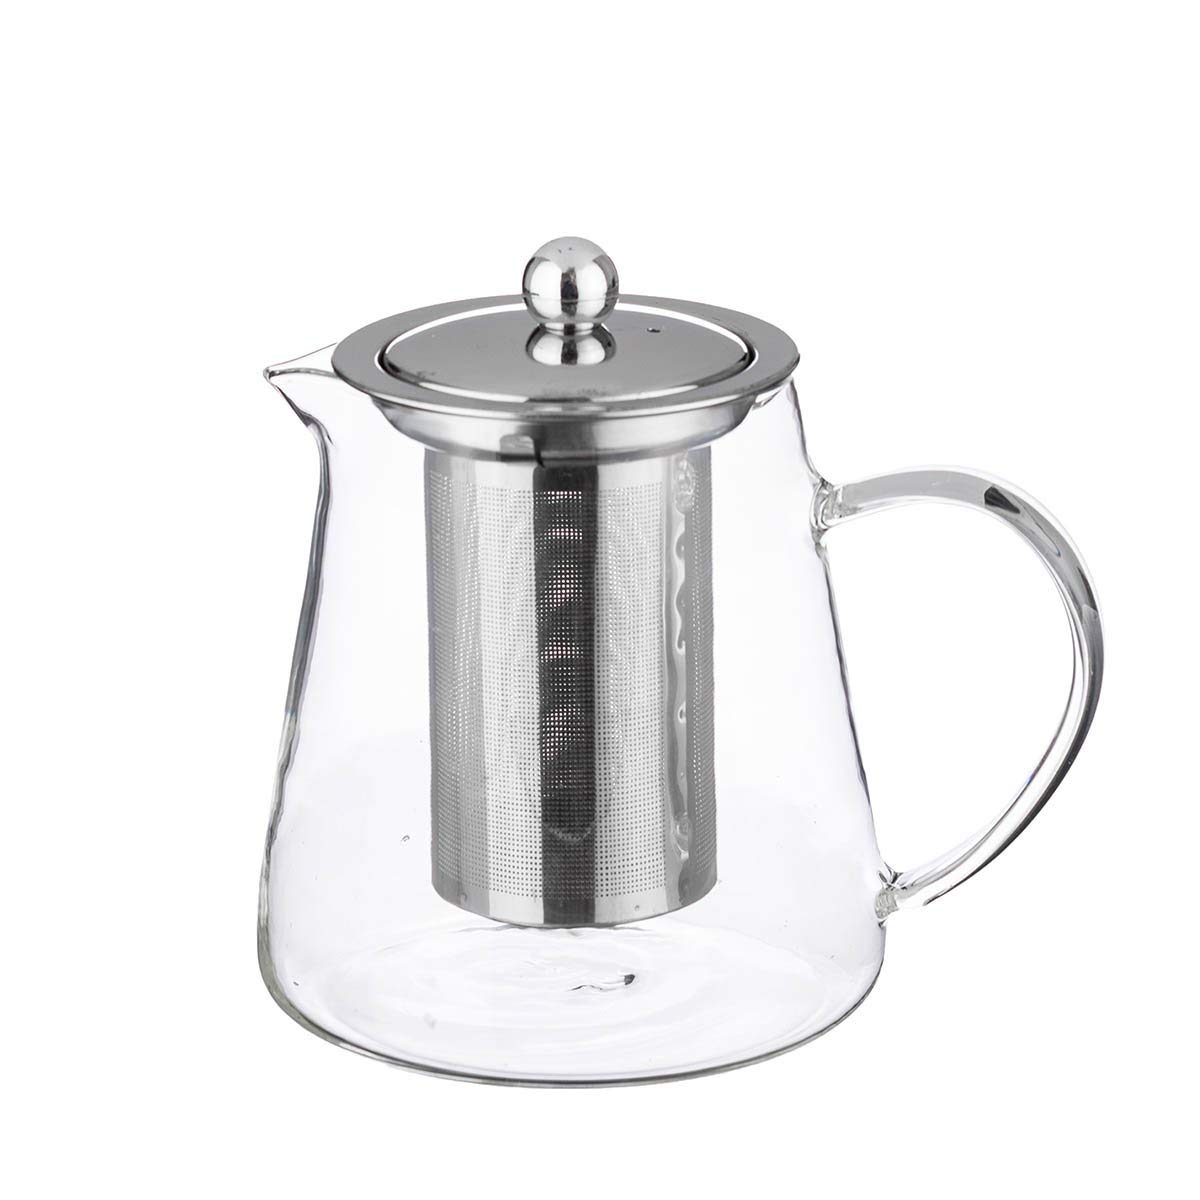 Tea Pot with Removable Infuser